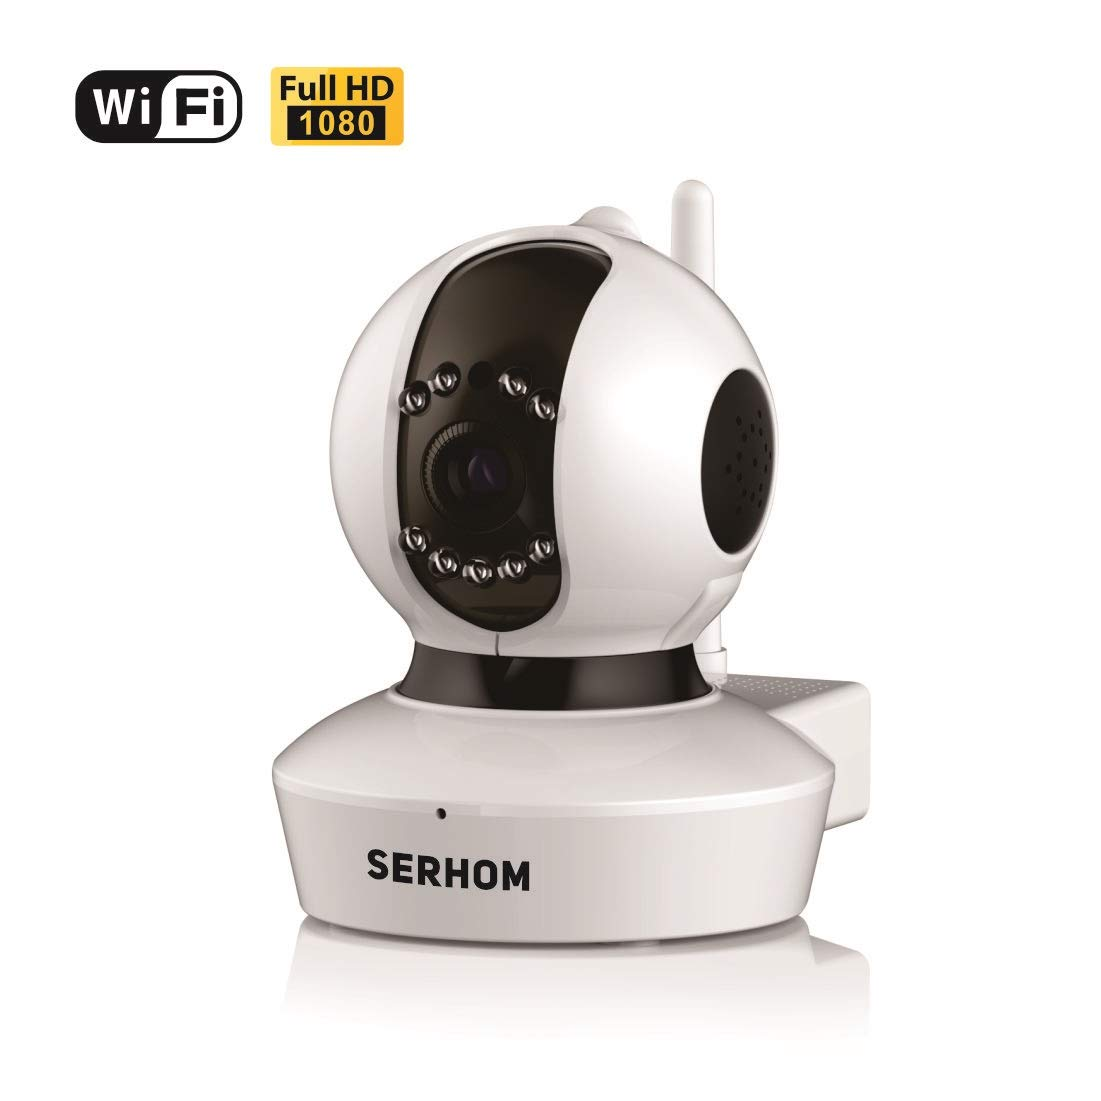 SERHOM IP Camera WiFi 1080P Wireless Surveillance Camera Network Webcam Two Way Audio Microphone Inside Onekey WiFi Setting Pan Tilt Movement Night Vision Baby Pet Video Monitor